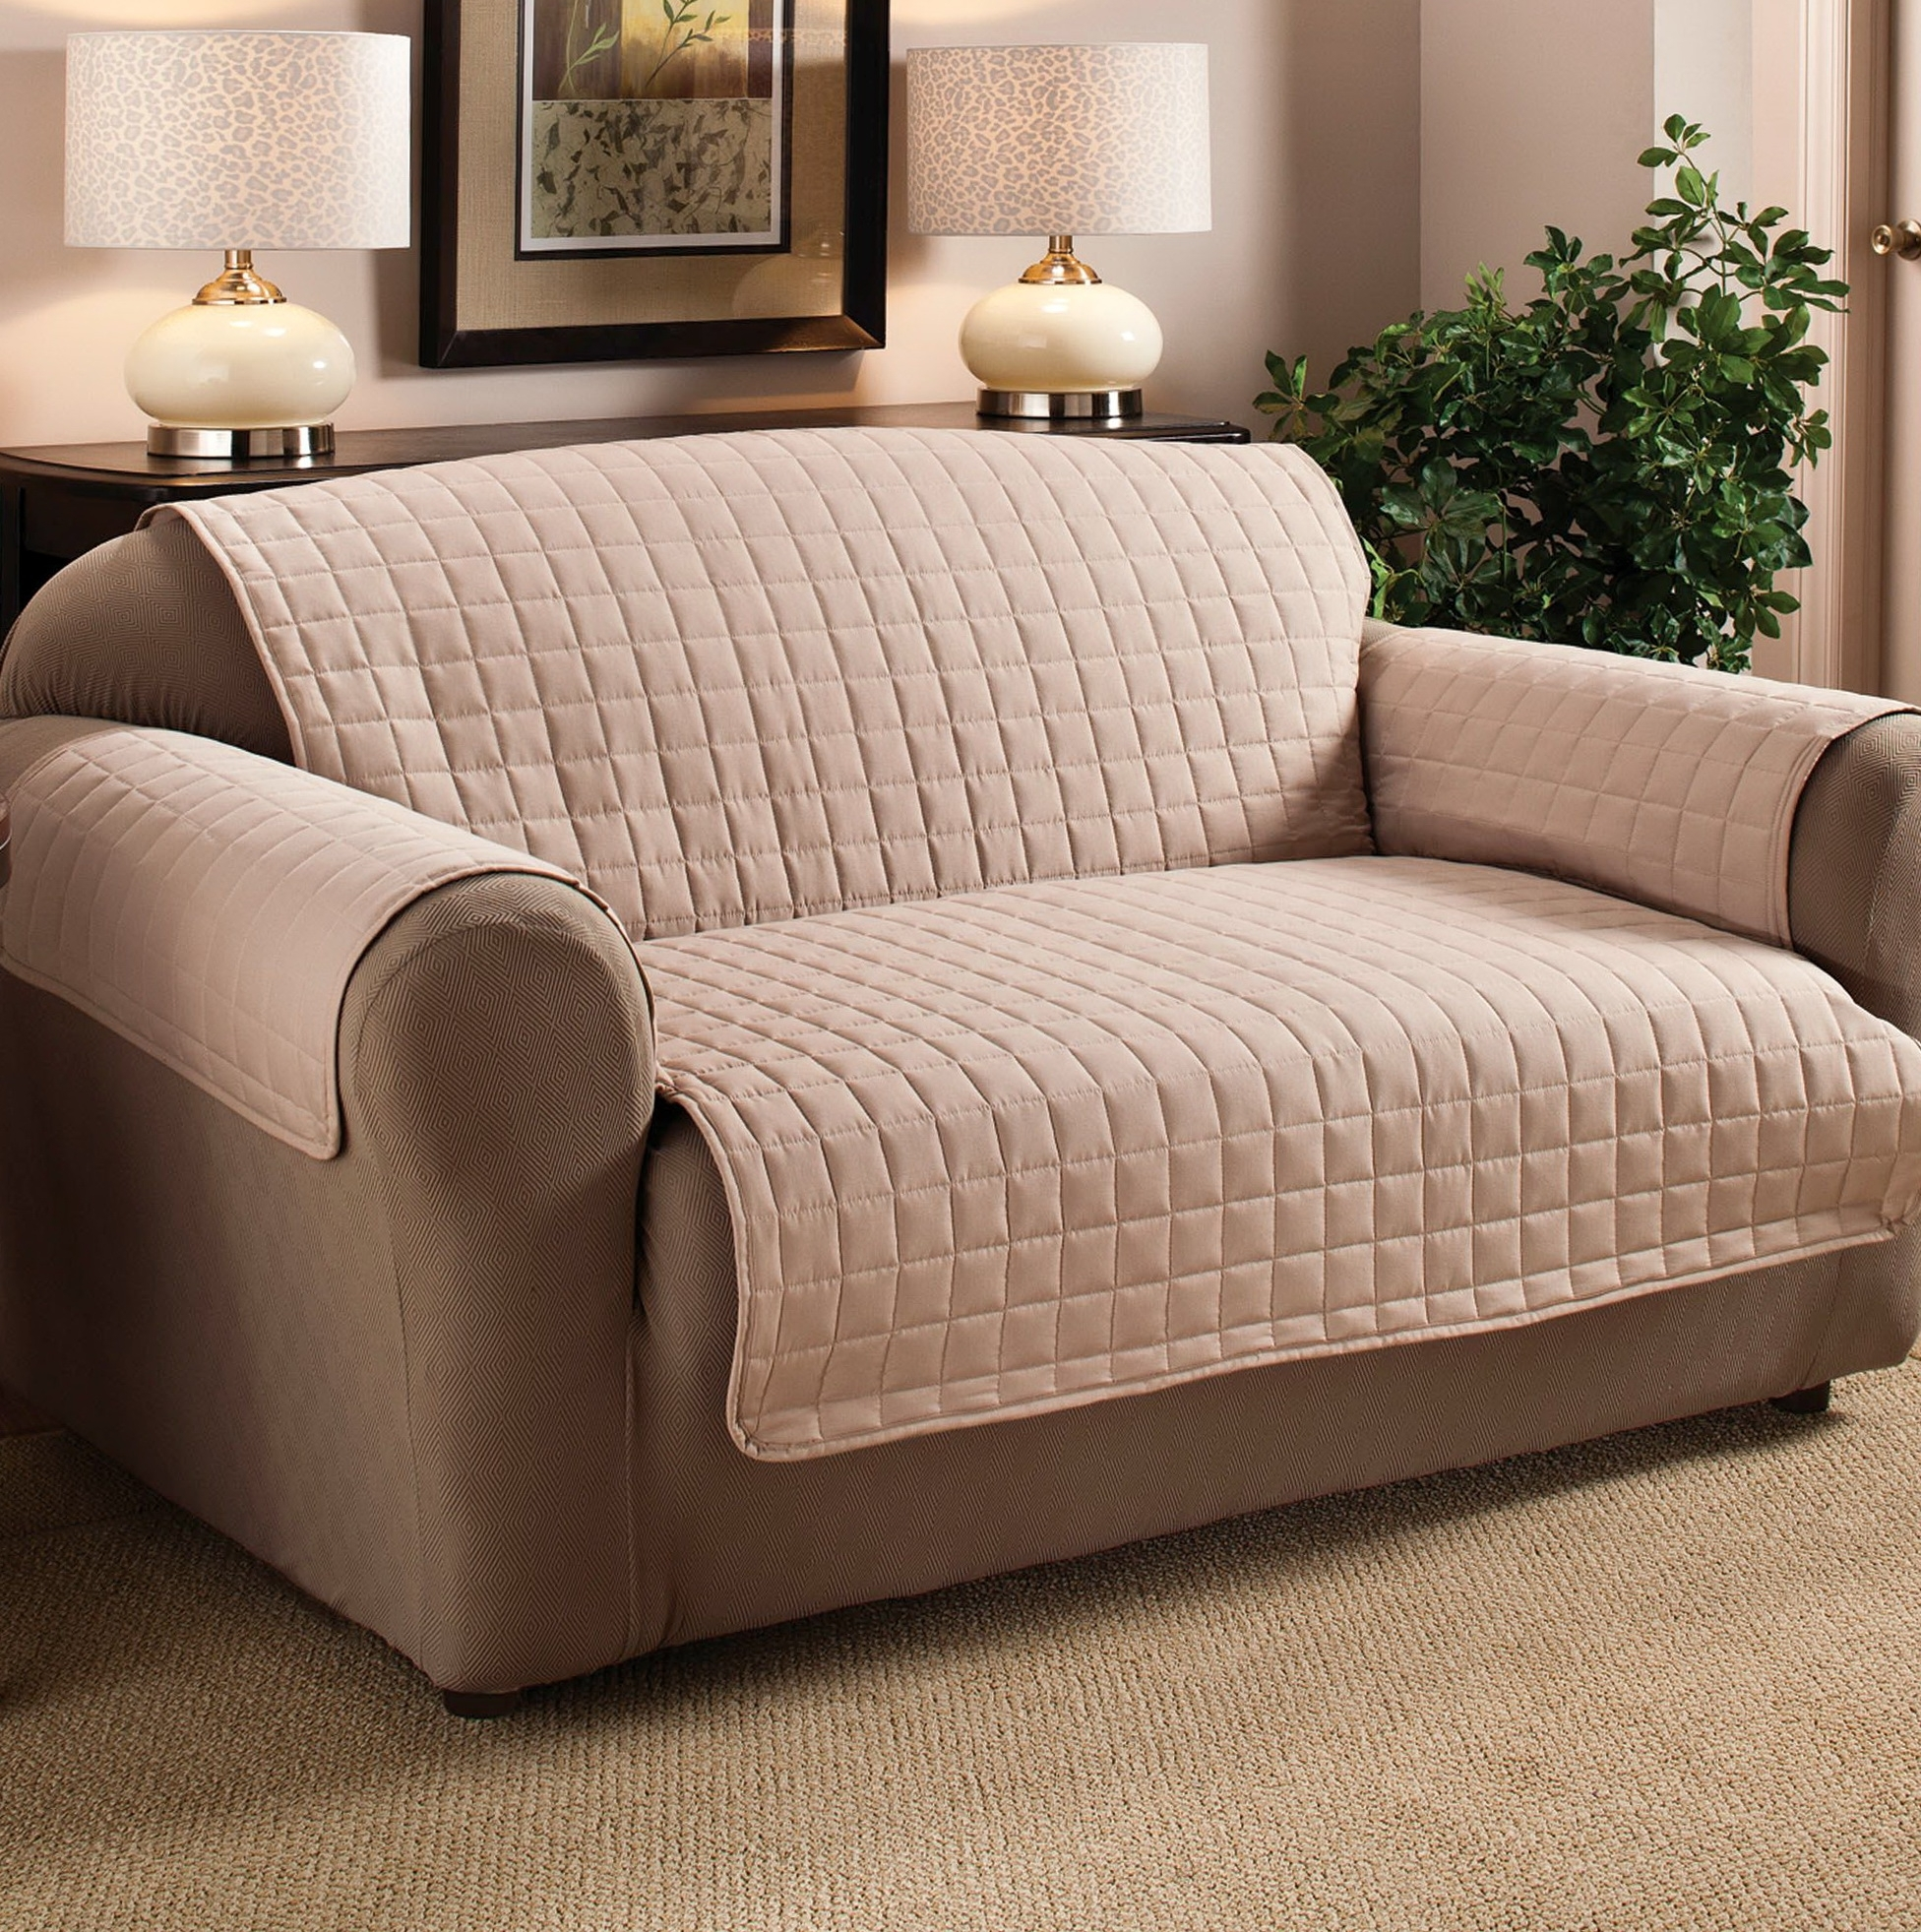 Sectional Sofas With Covers In Fashionable Sectional Sofa Covers Walmart – Hotelsbacau (View 14 of 20)